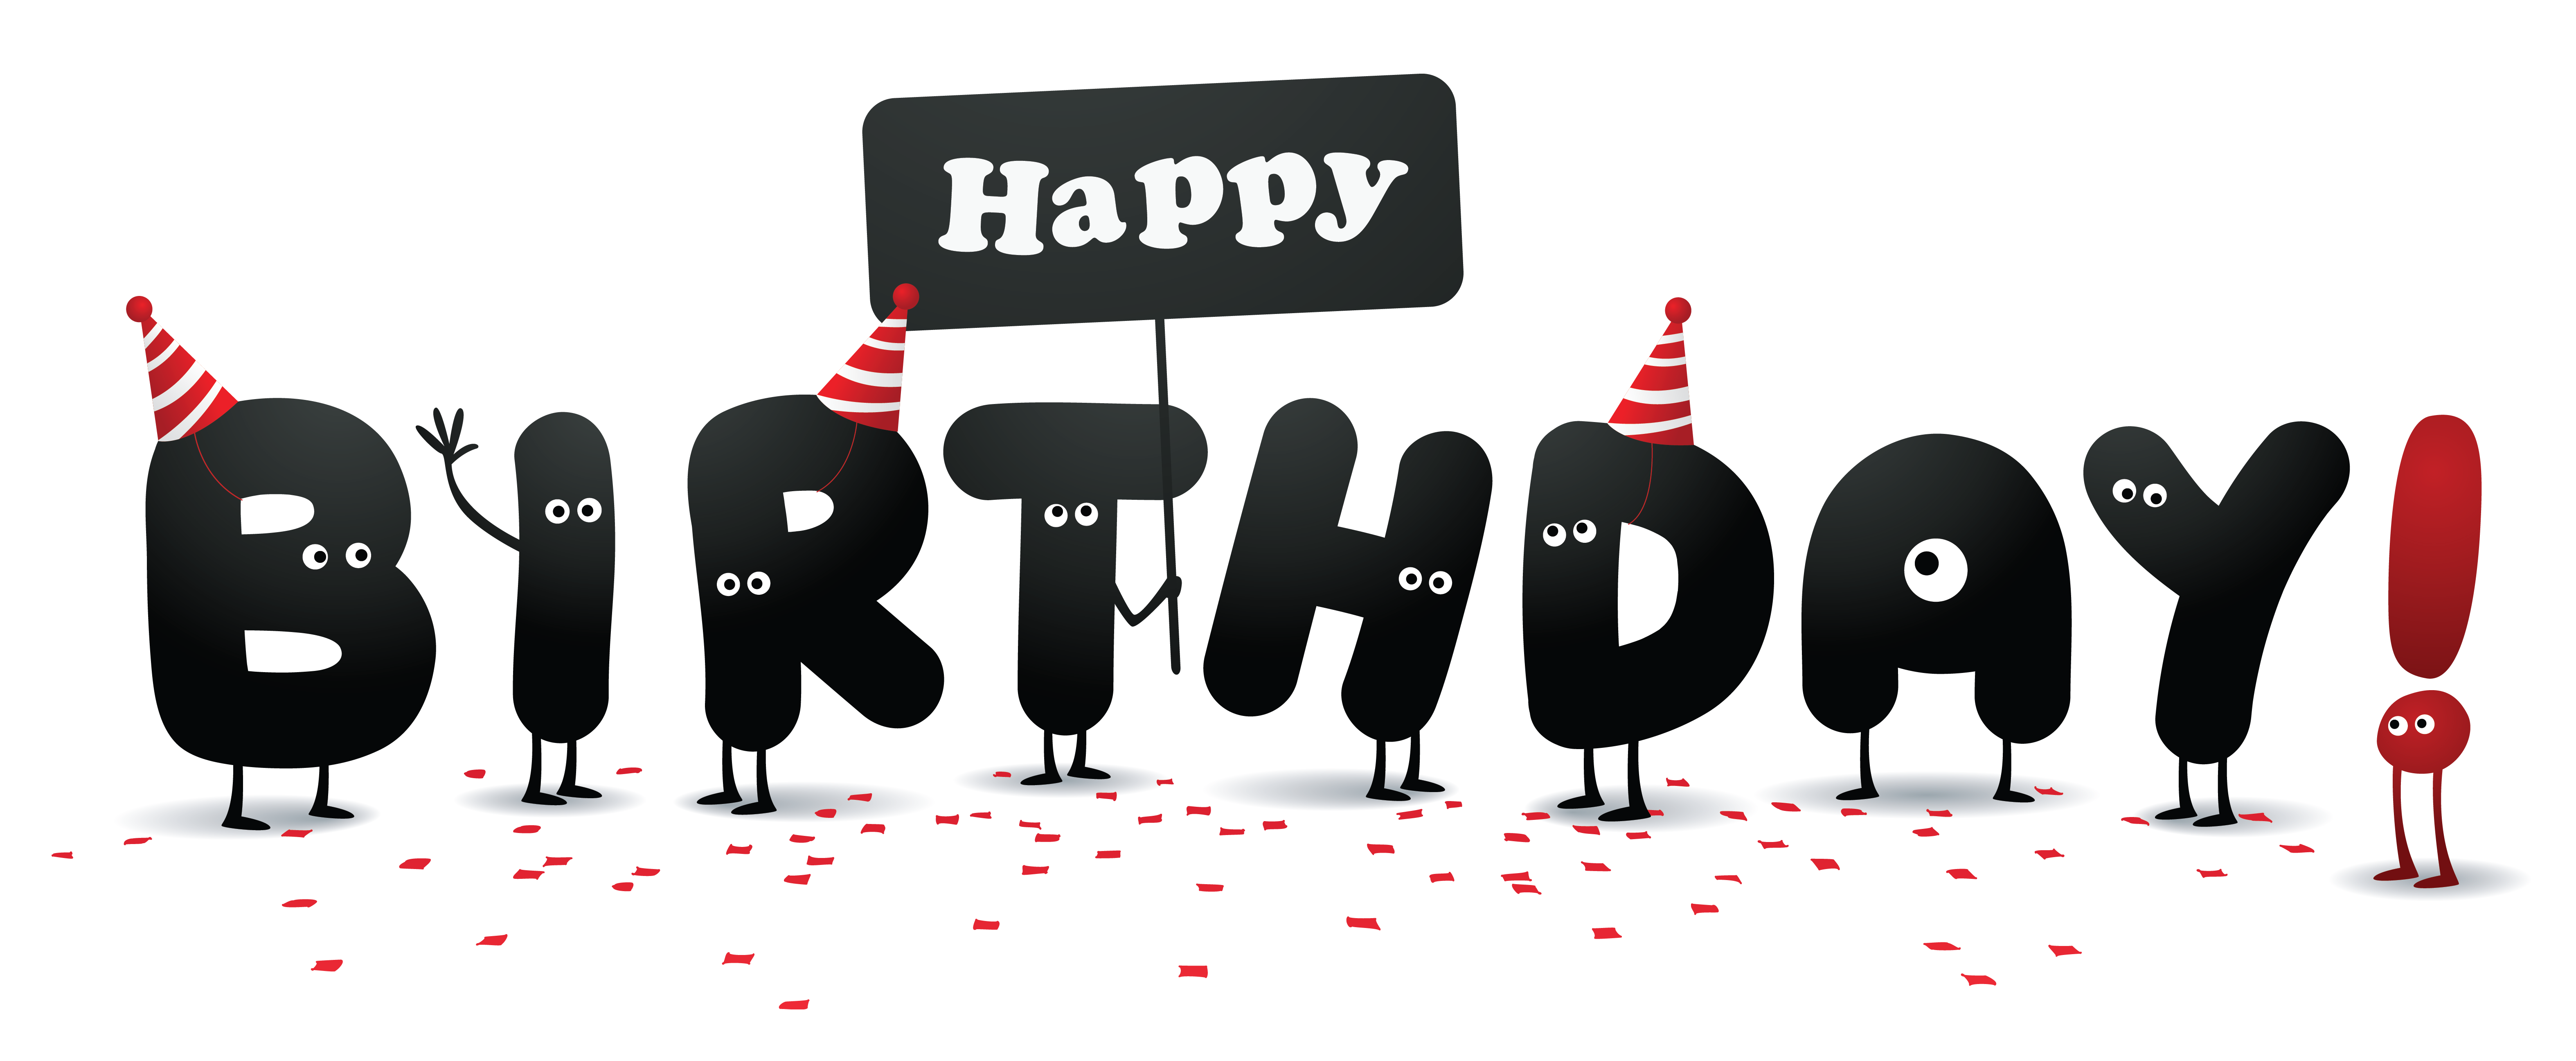 Halloween birthday clipart free picture freeuse Birthday PNG HD Animated Transparent Birthday HD Animated.PNG Images ... picture freeuse